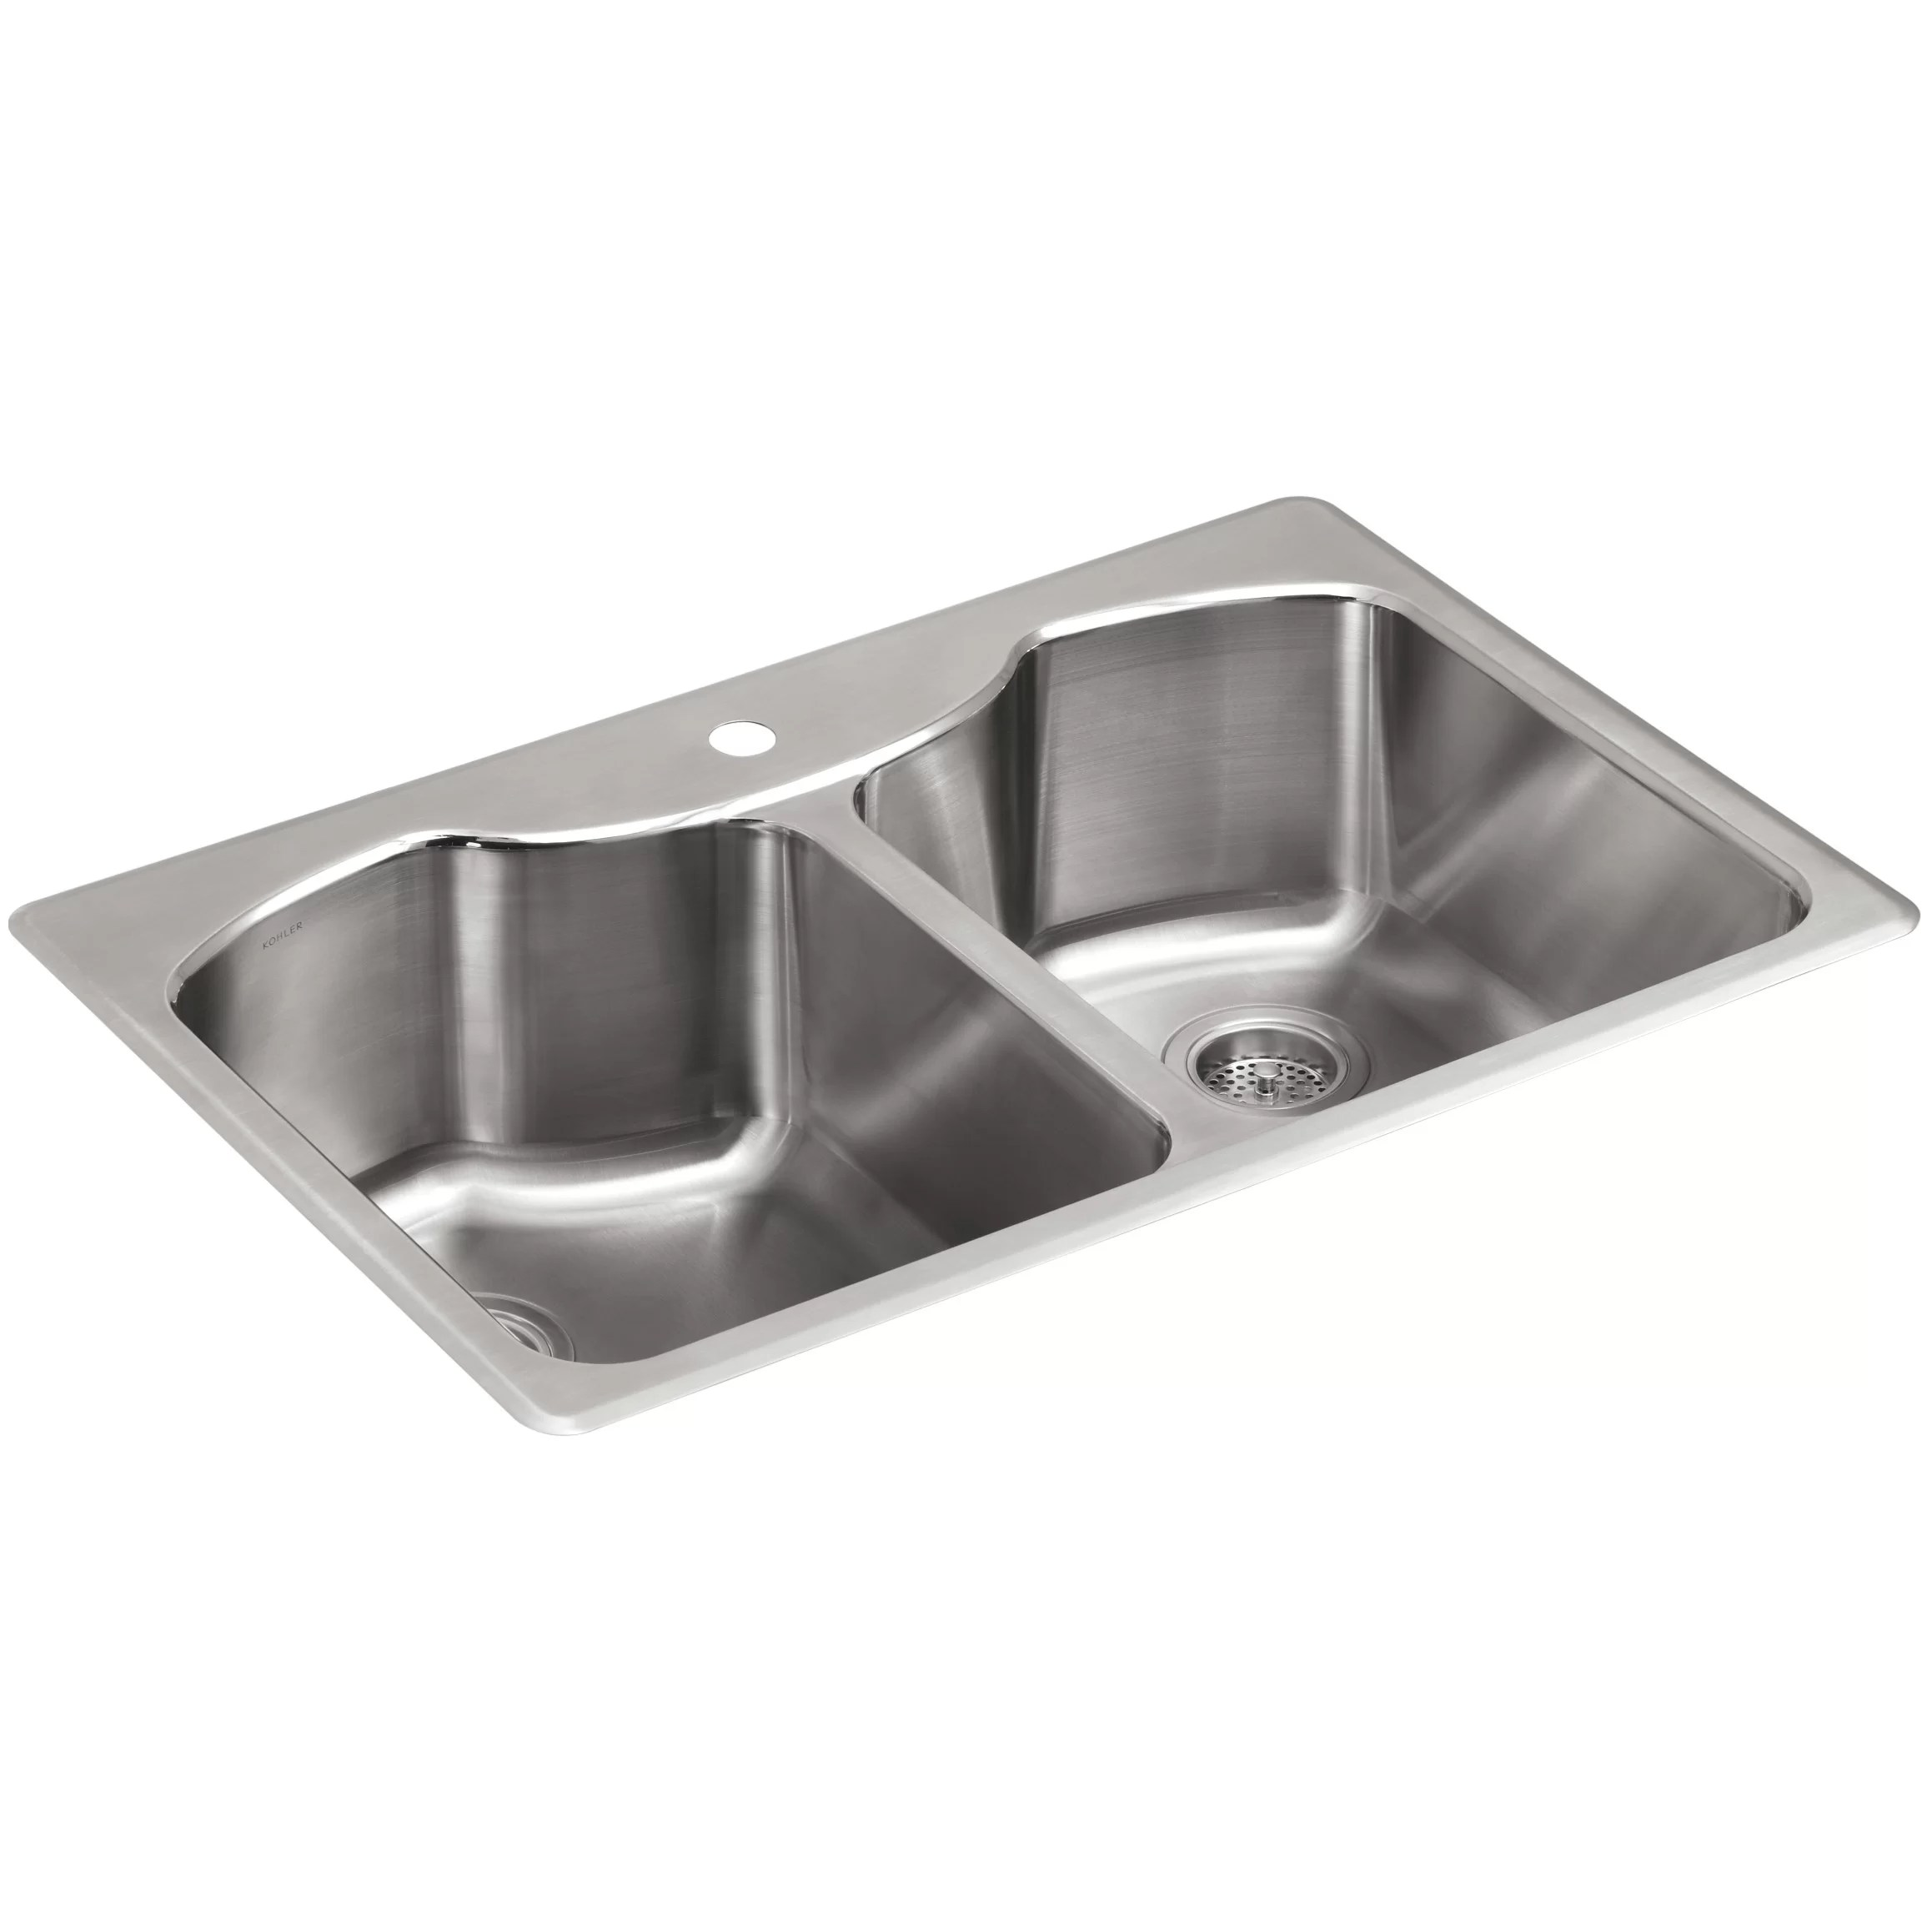 stainless steel kitchen sinks 33 x 22 modern island for sale kohler octave quot 9 5 16 top mount double equal